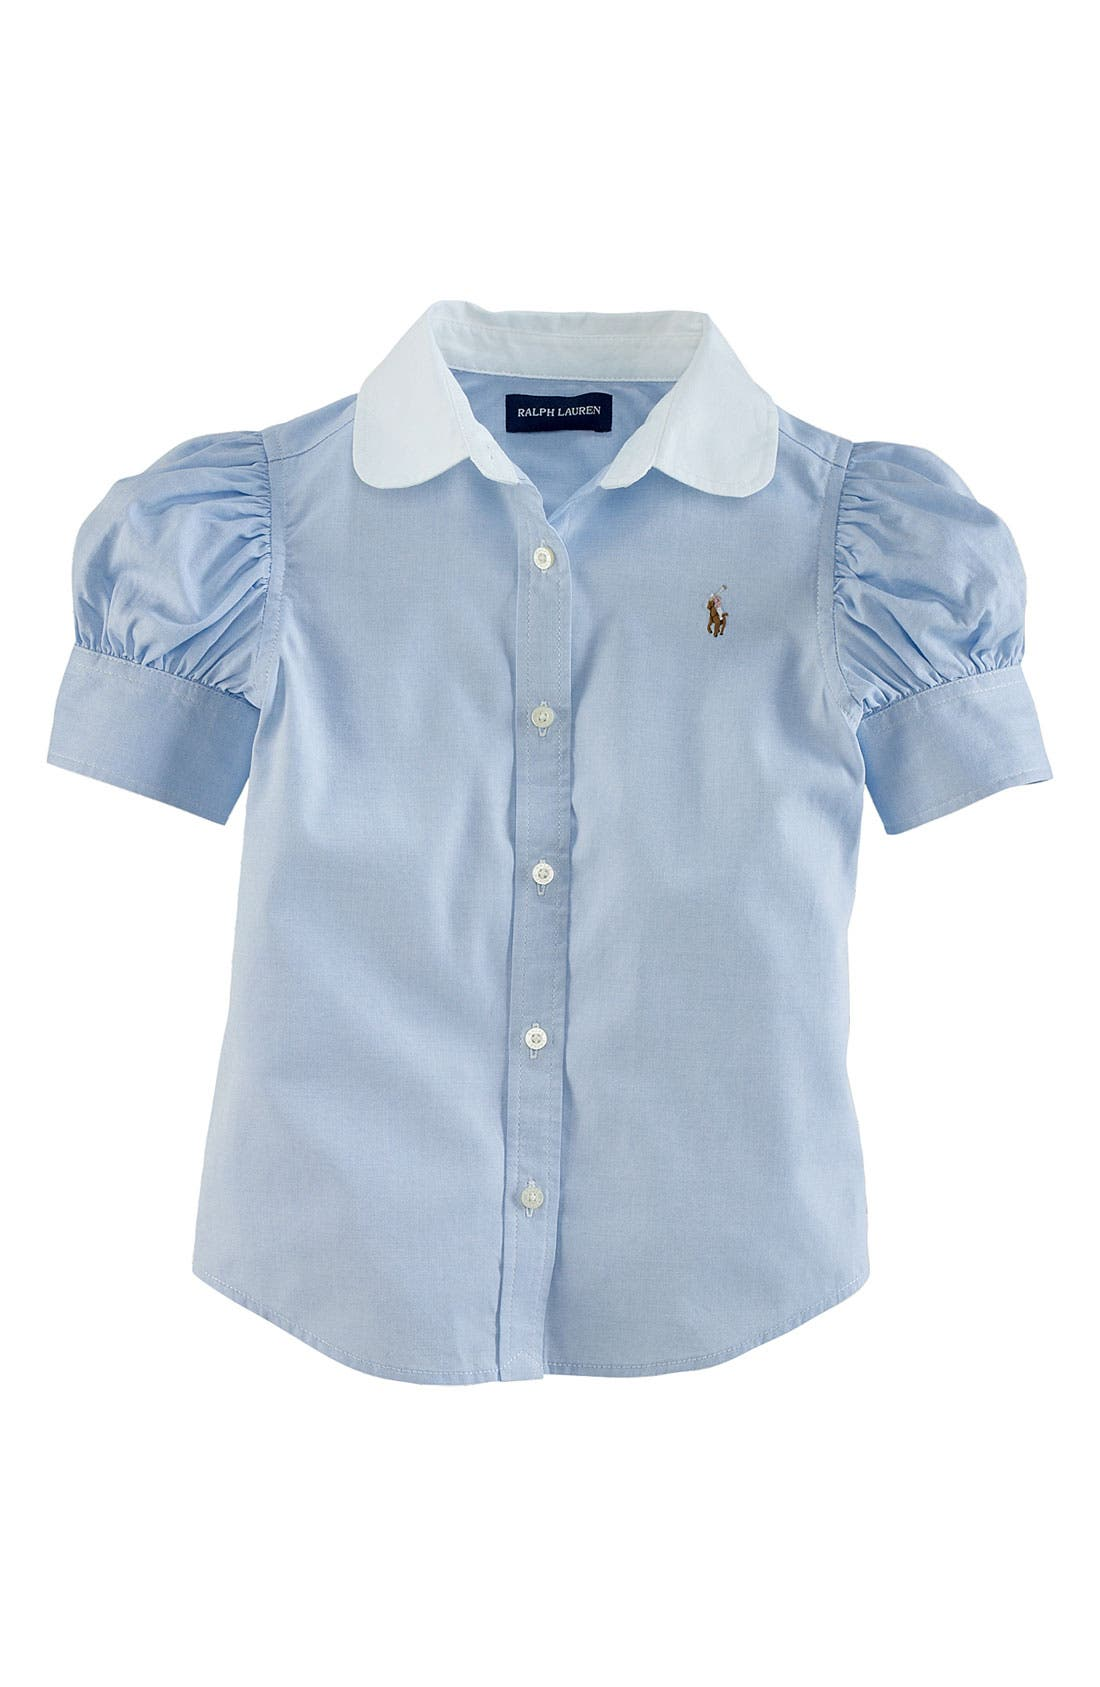 Alternate Image 1 Selected - Ralph Lauren Pinpoint Oxford Shirt (Toddler)